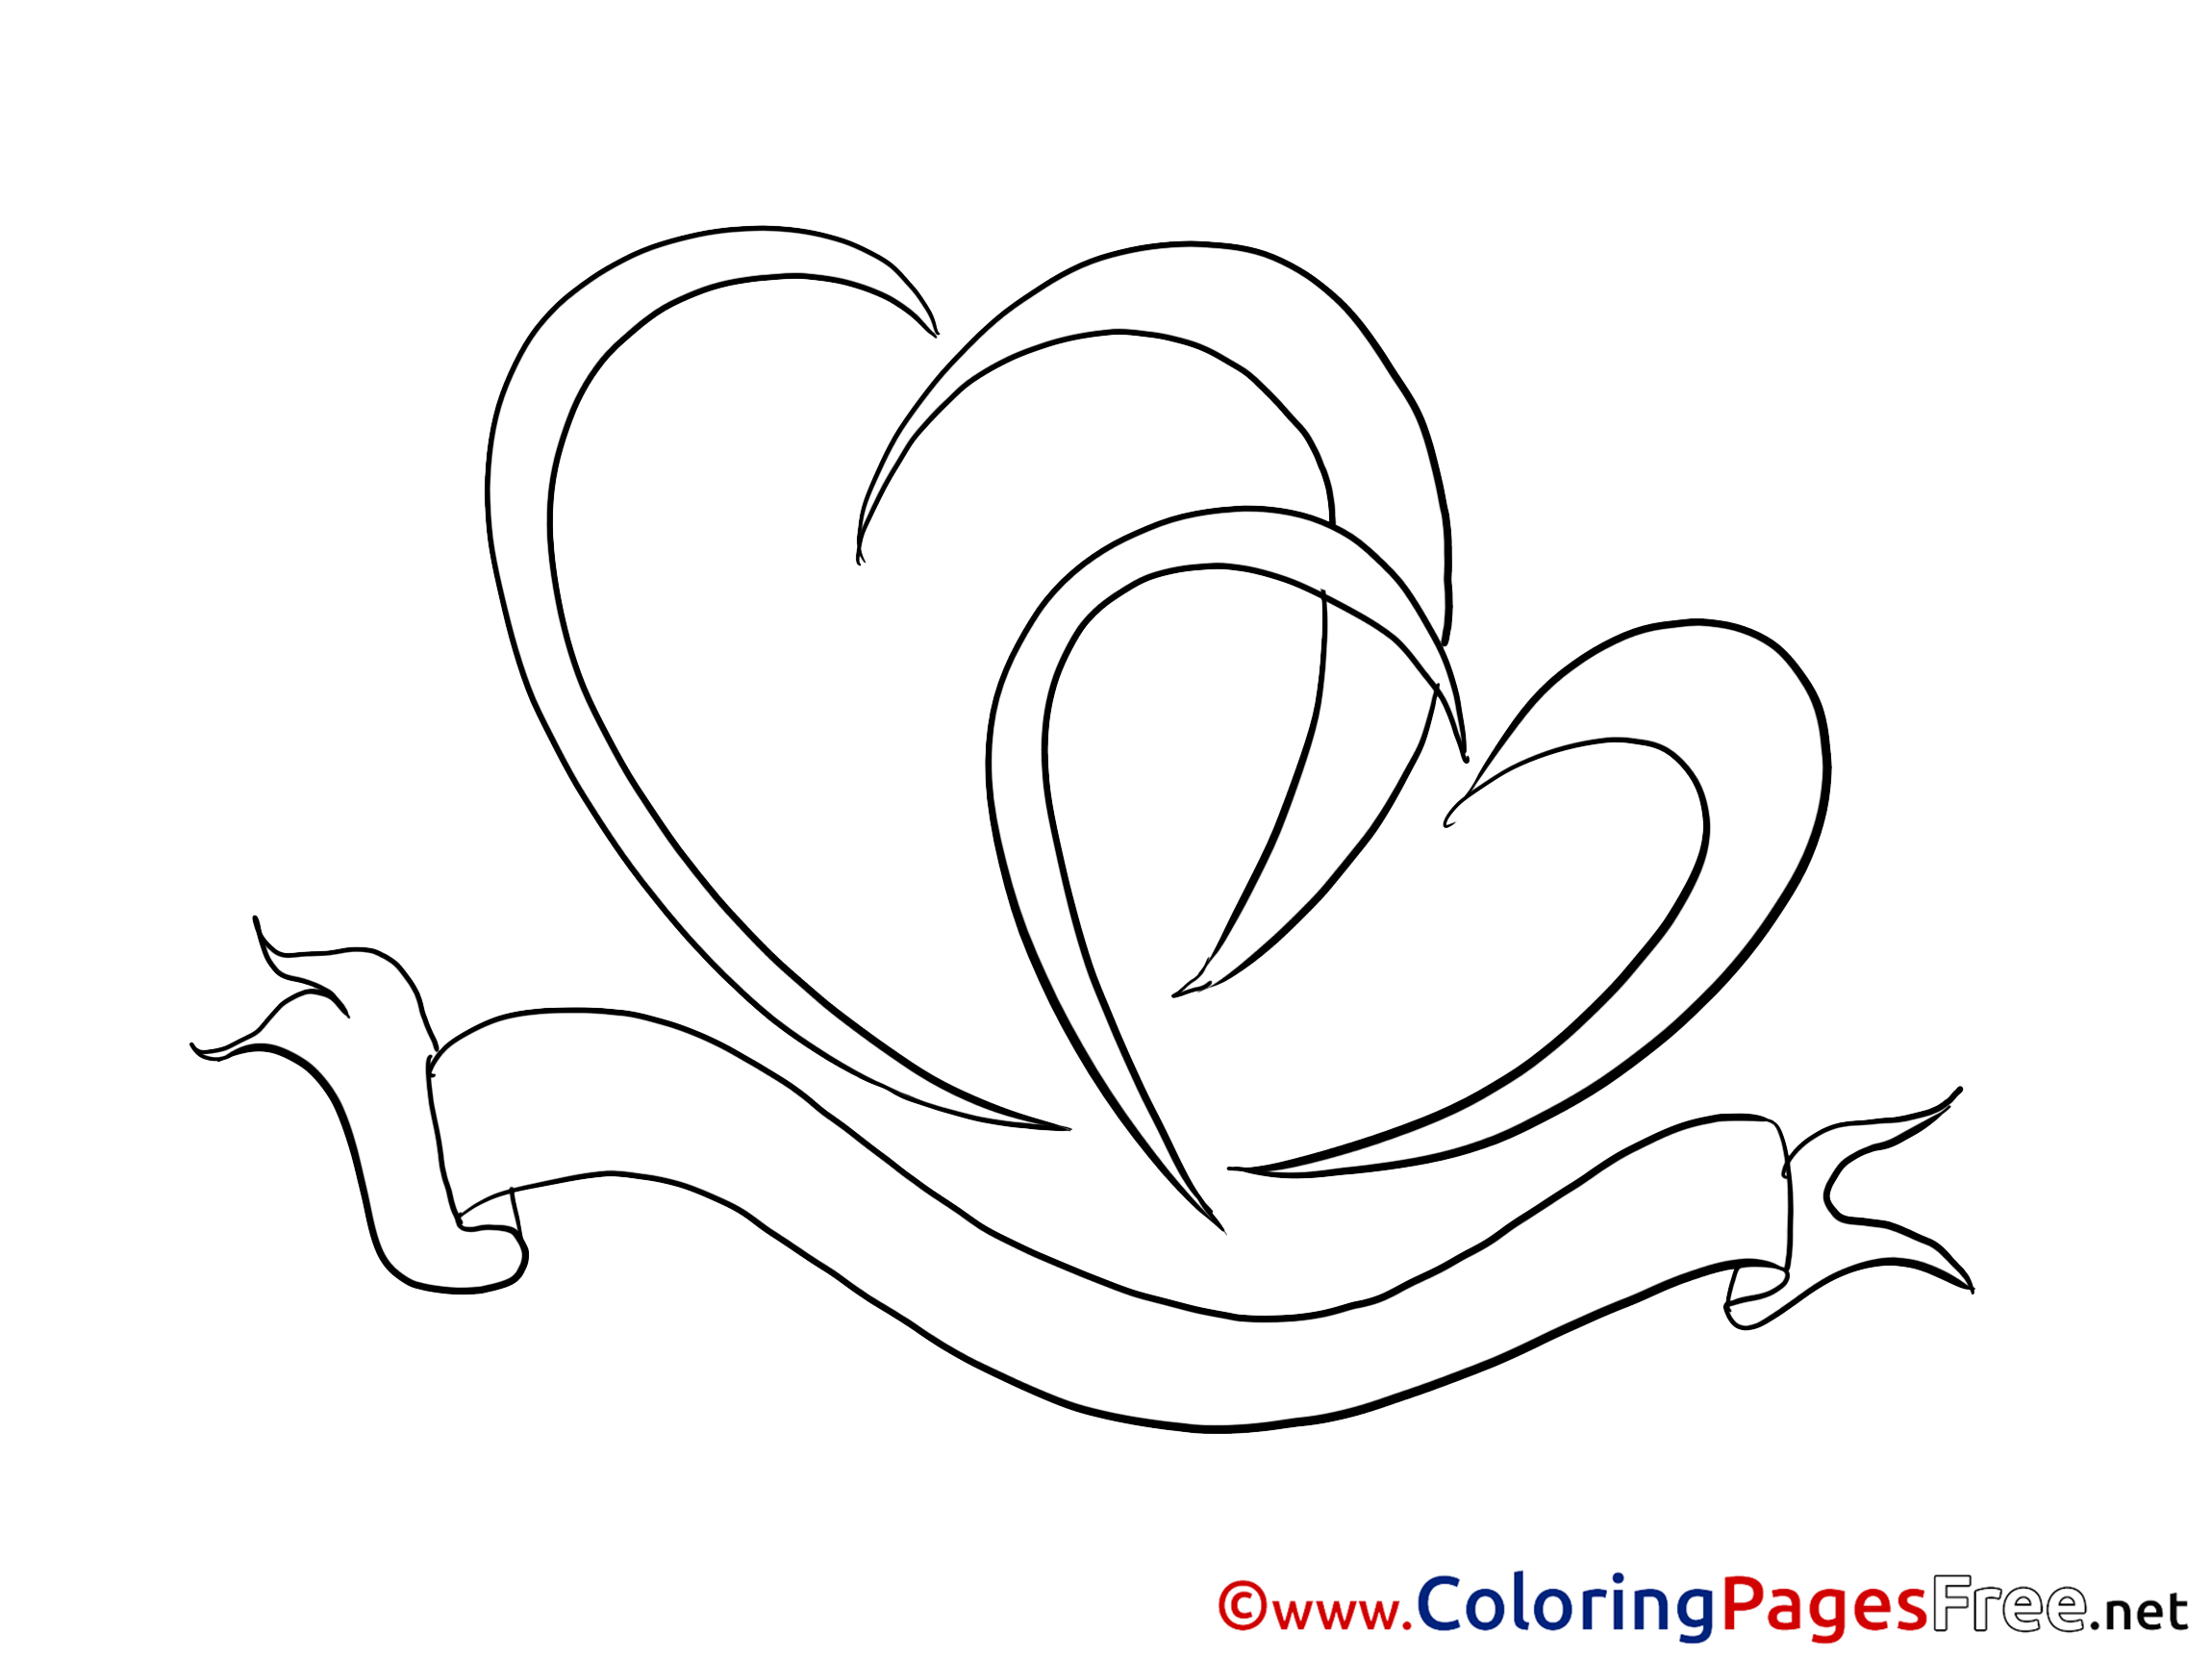 heart with ribbon coloring pages cancer ribbon silhouette at getdrawings free download pages with heart ribbon coloring